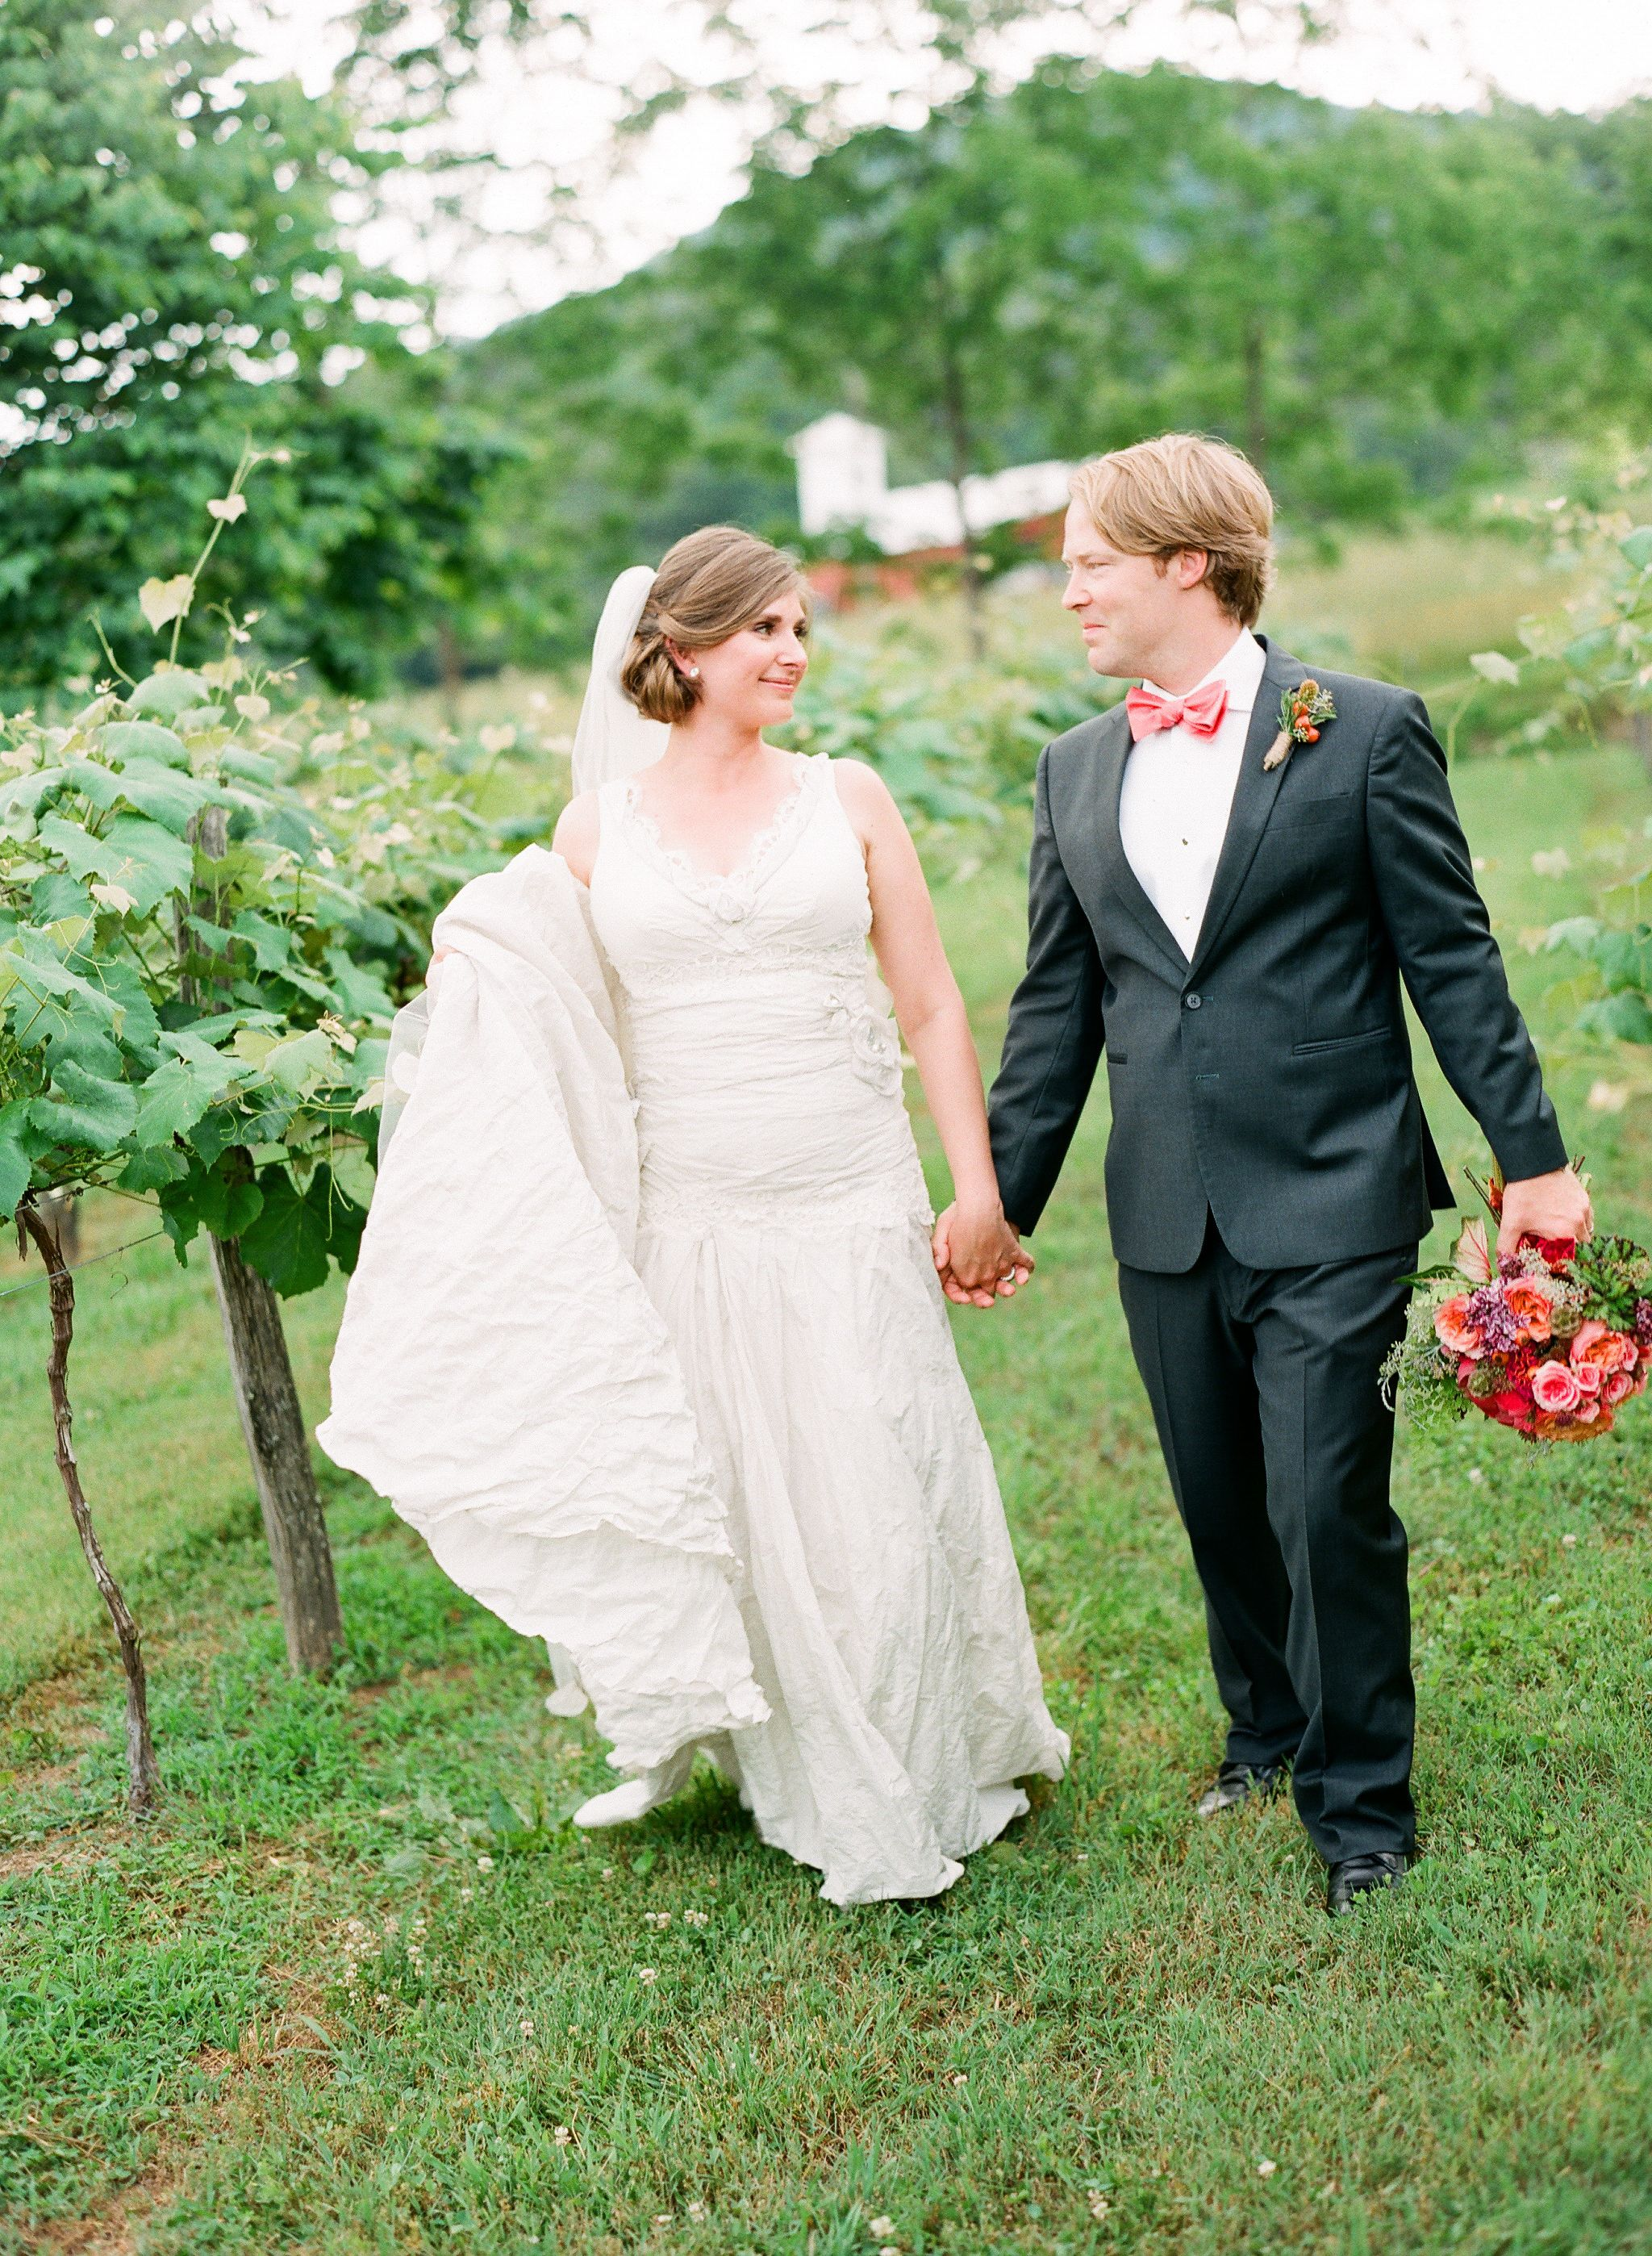 A chic outdoor wedding at the farmhouse at persimmon creek